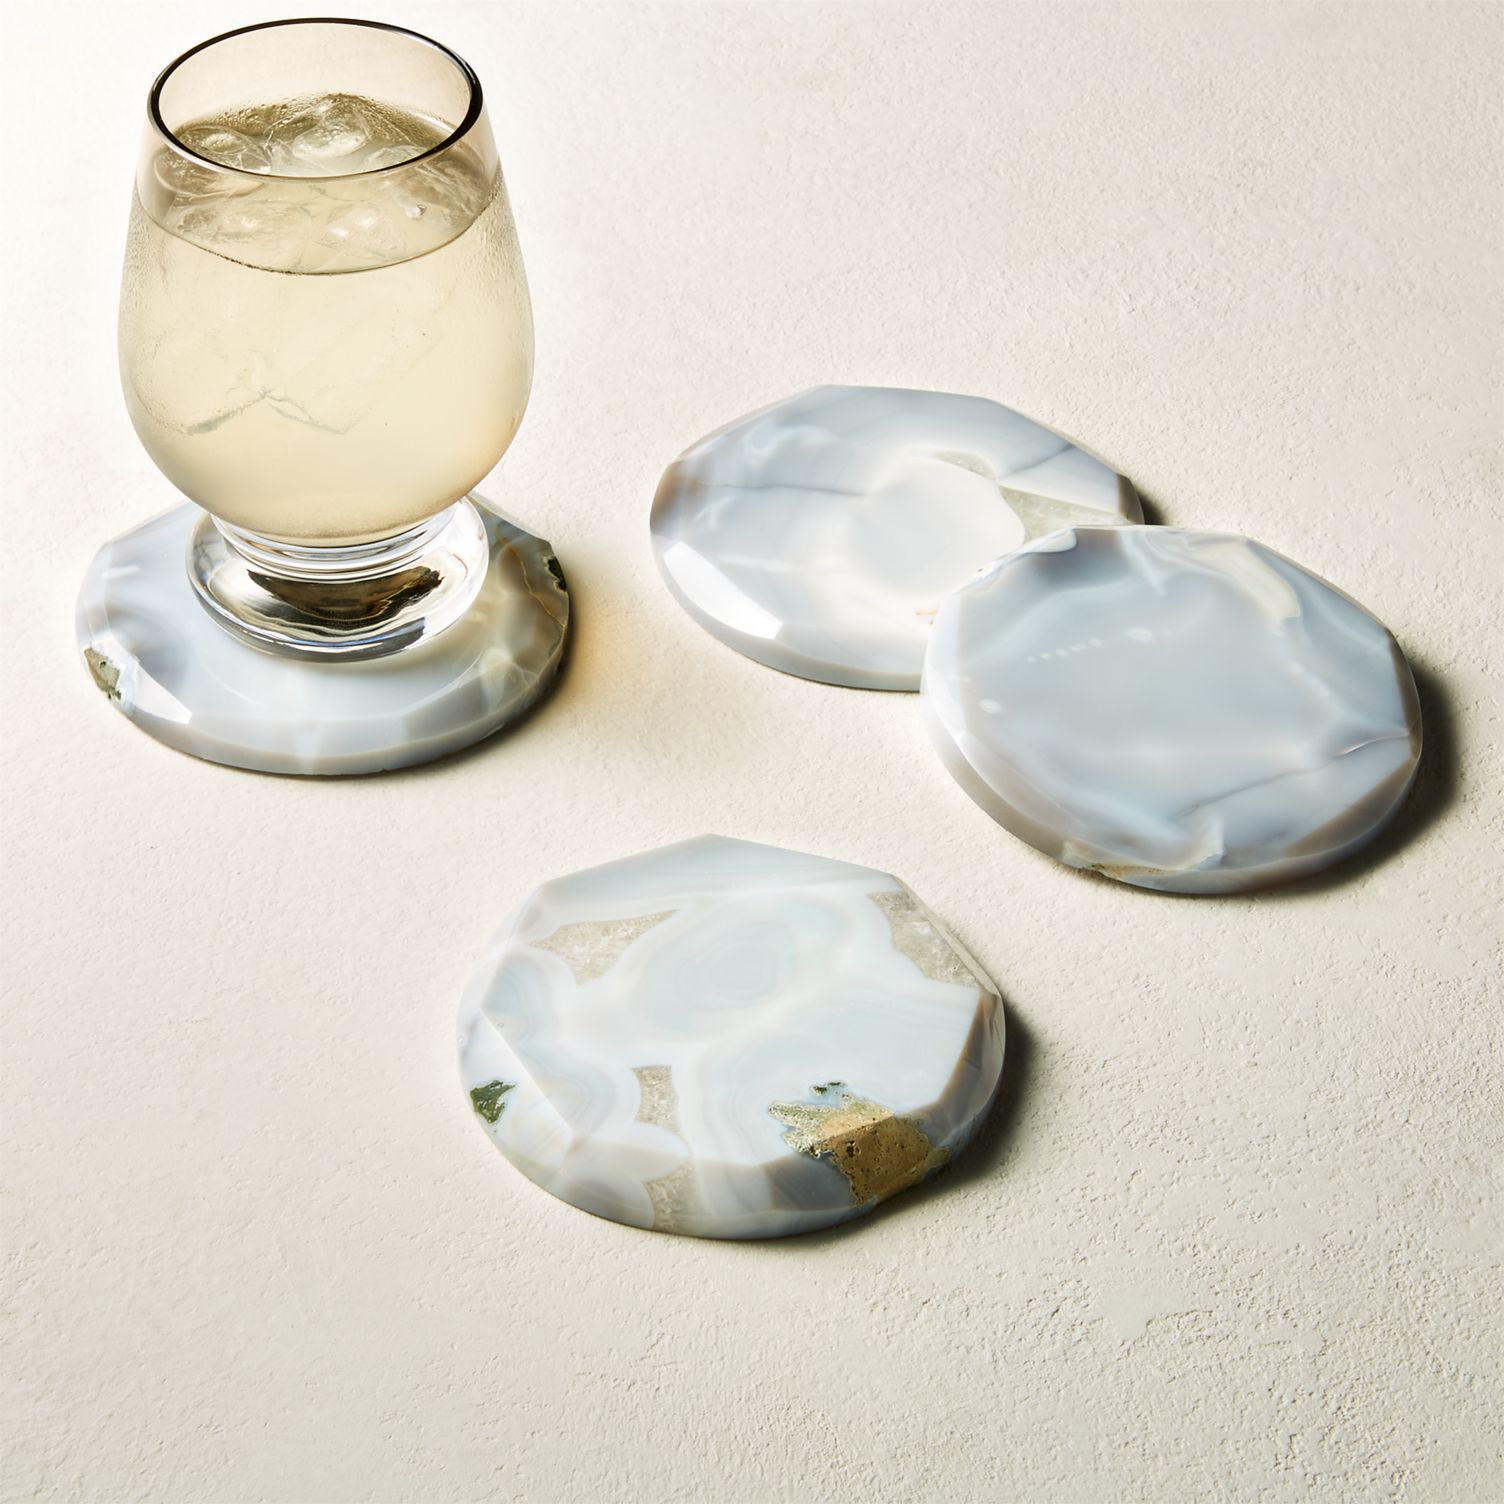 Agate coasters from CB2